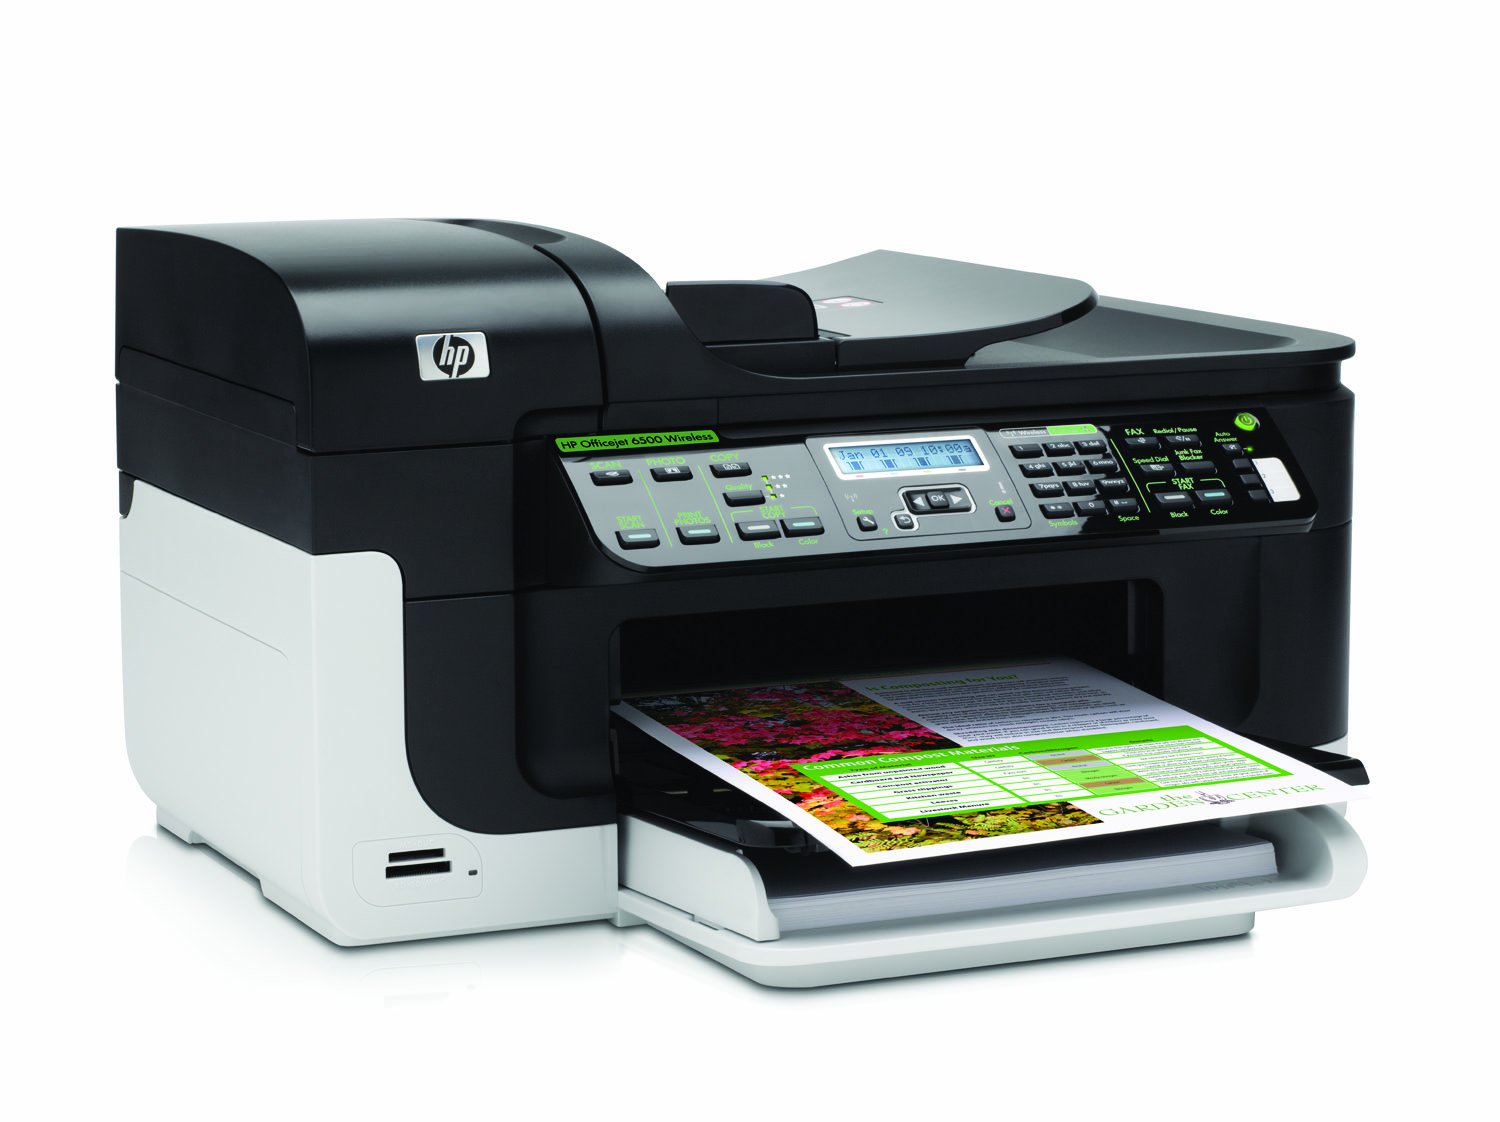 HP Officejet 6500 Wireless Multifunction All-in-One Printer, Copier,  Scanner and Fax: Amazon.co.uk: Computers & Accessories